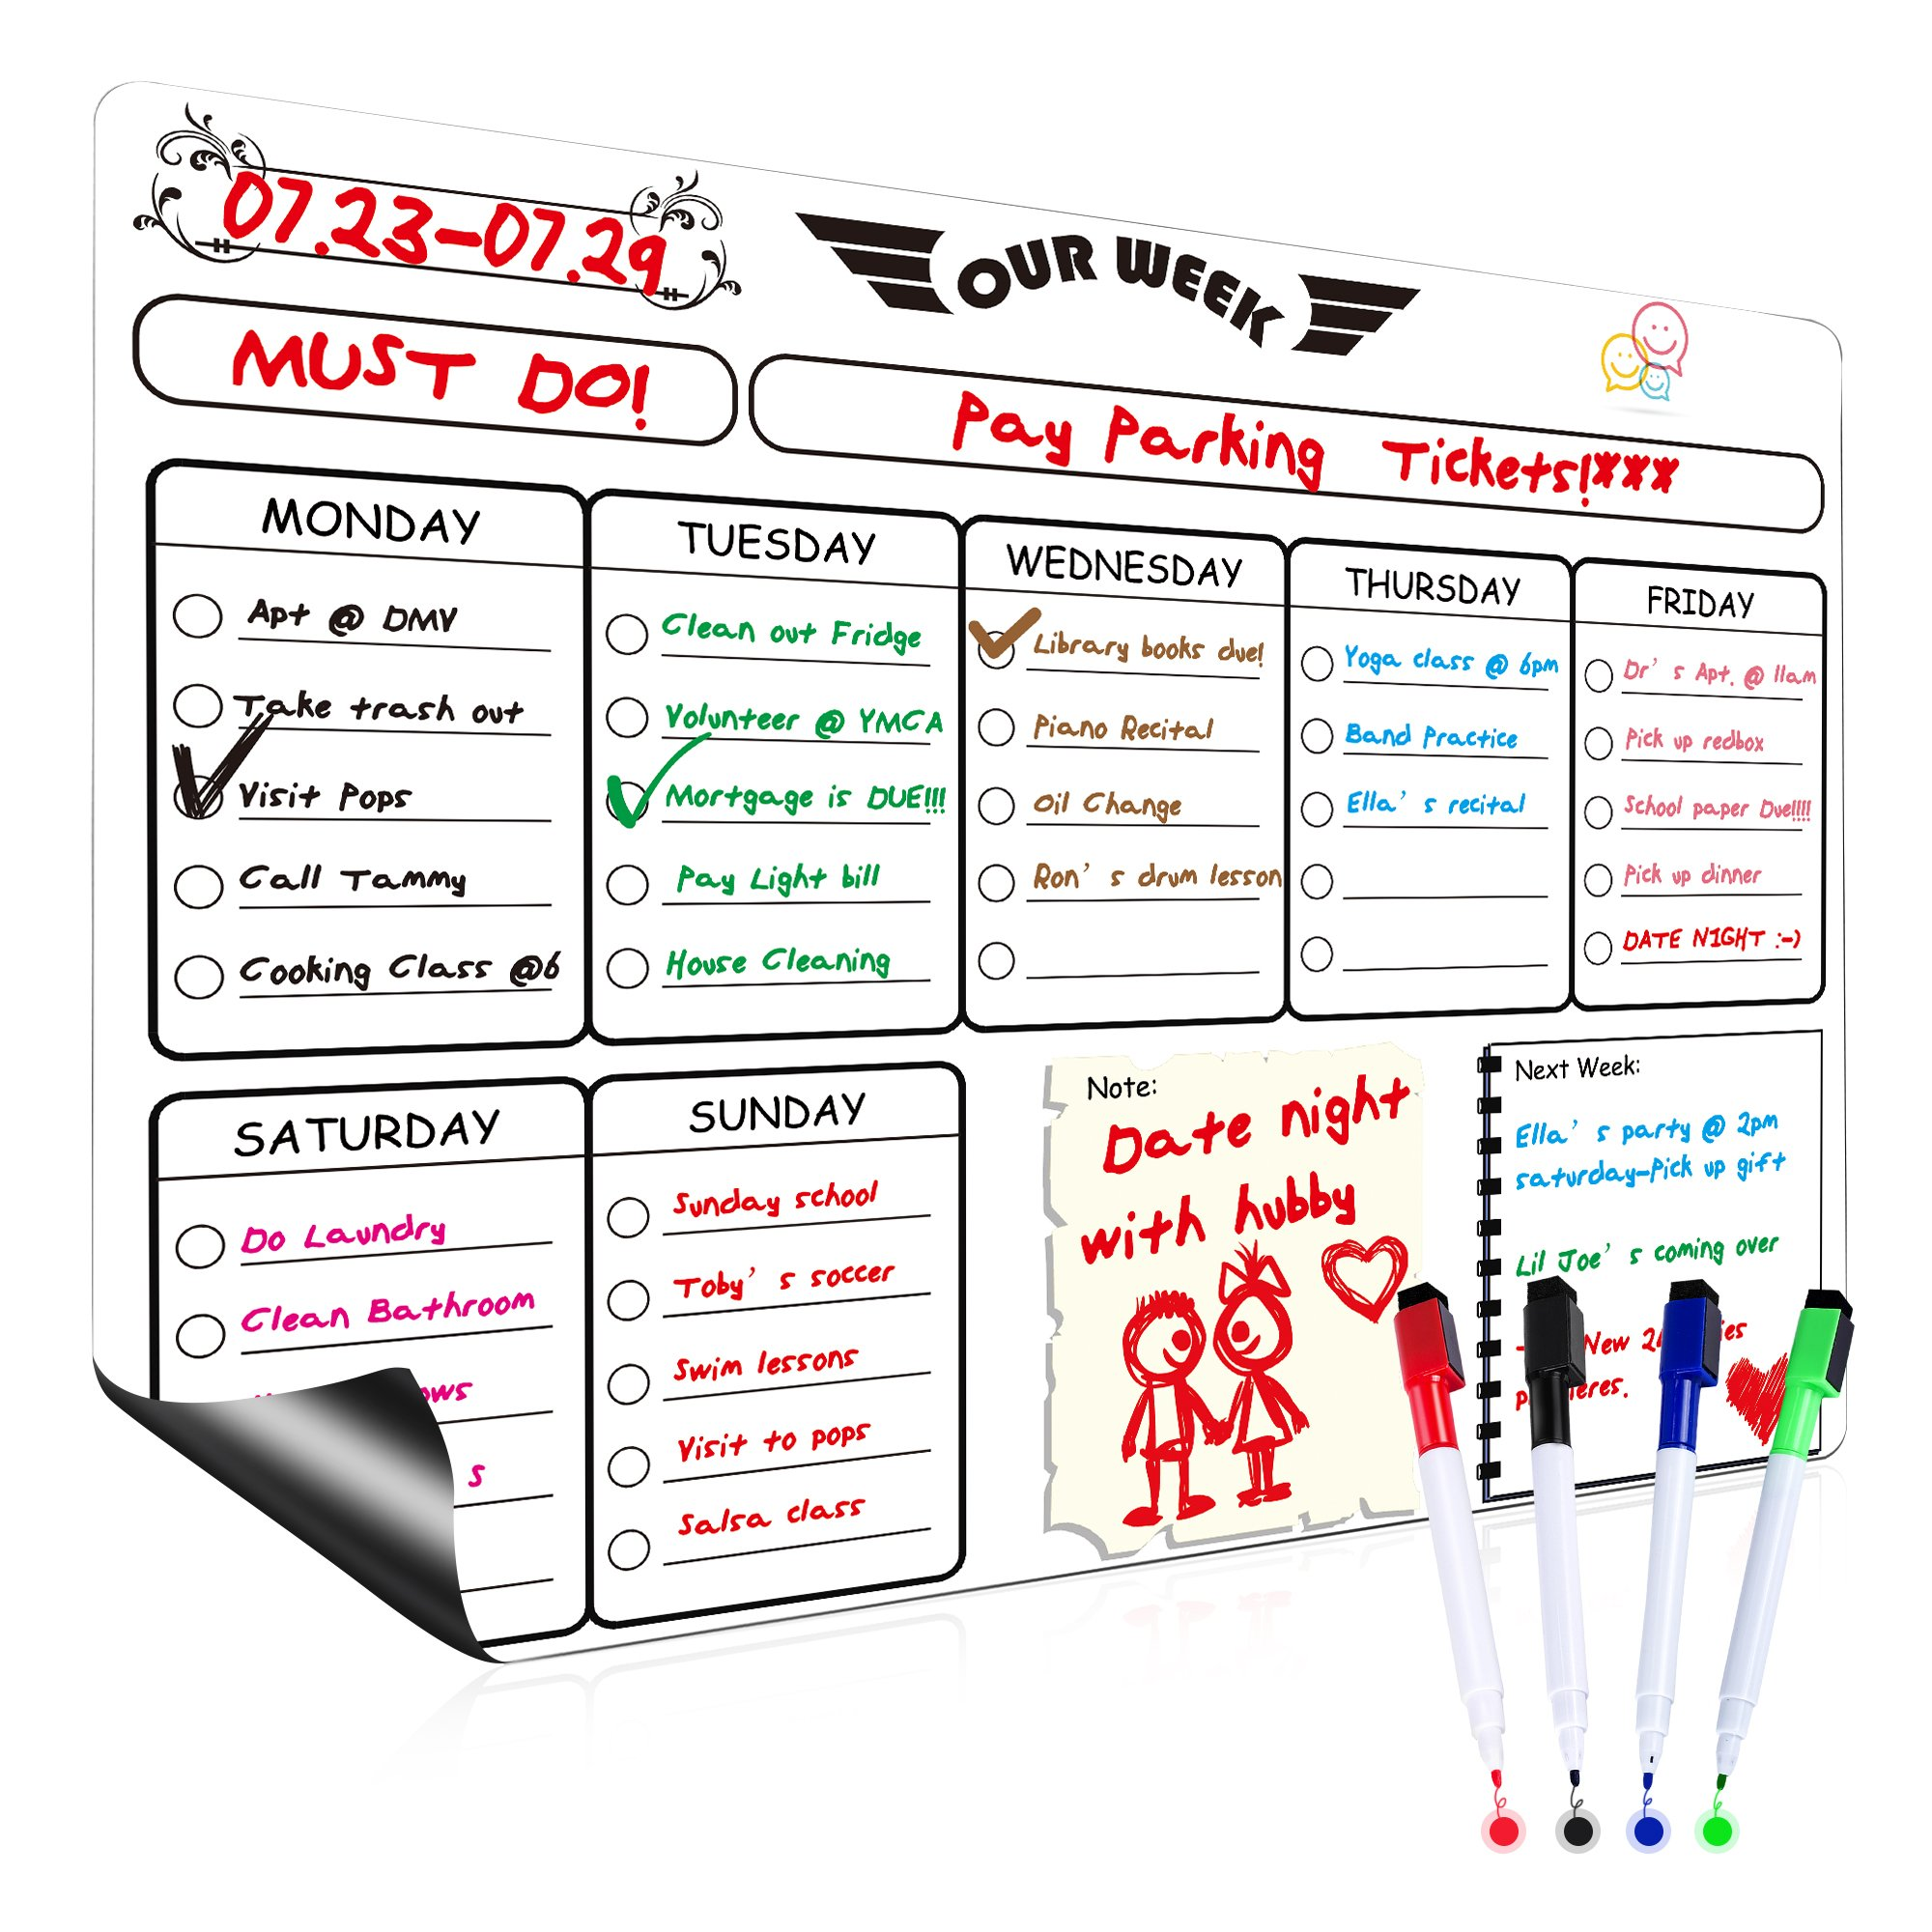 FaayFian Stain Resistant Large Fridge Magnet Weekly Dry Erase Board Calendar, Whiteboard to Do List with Bonus 4 Magnetic Dry Erase Markers for Family, Office,School, Home Organizing